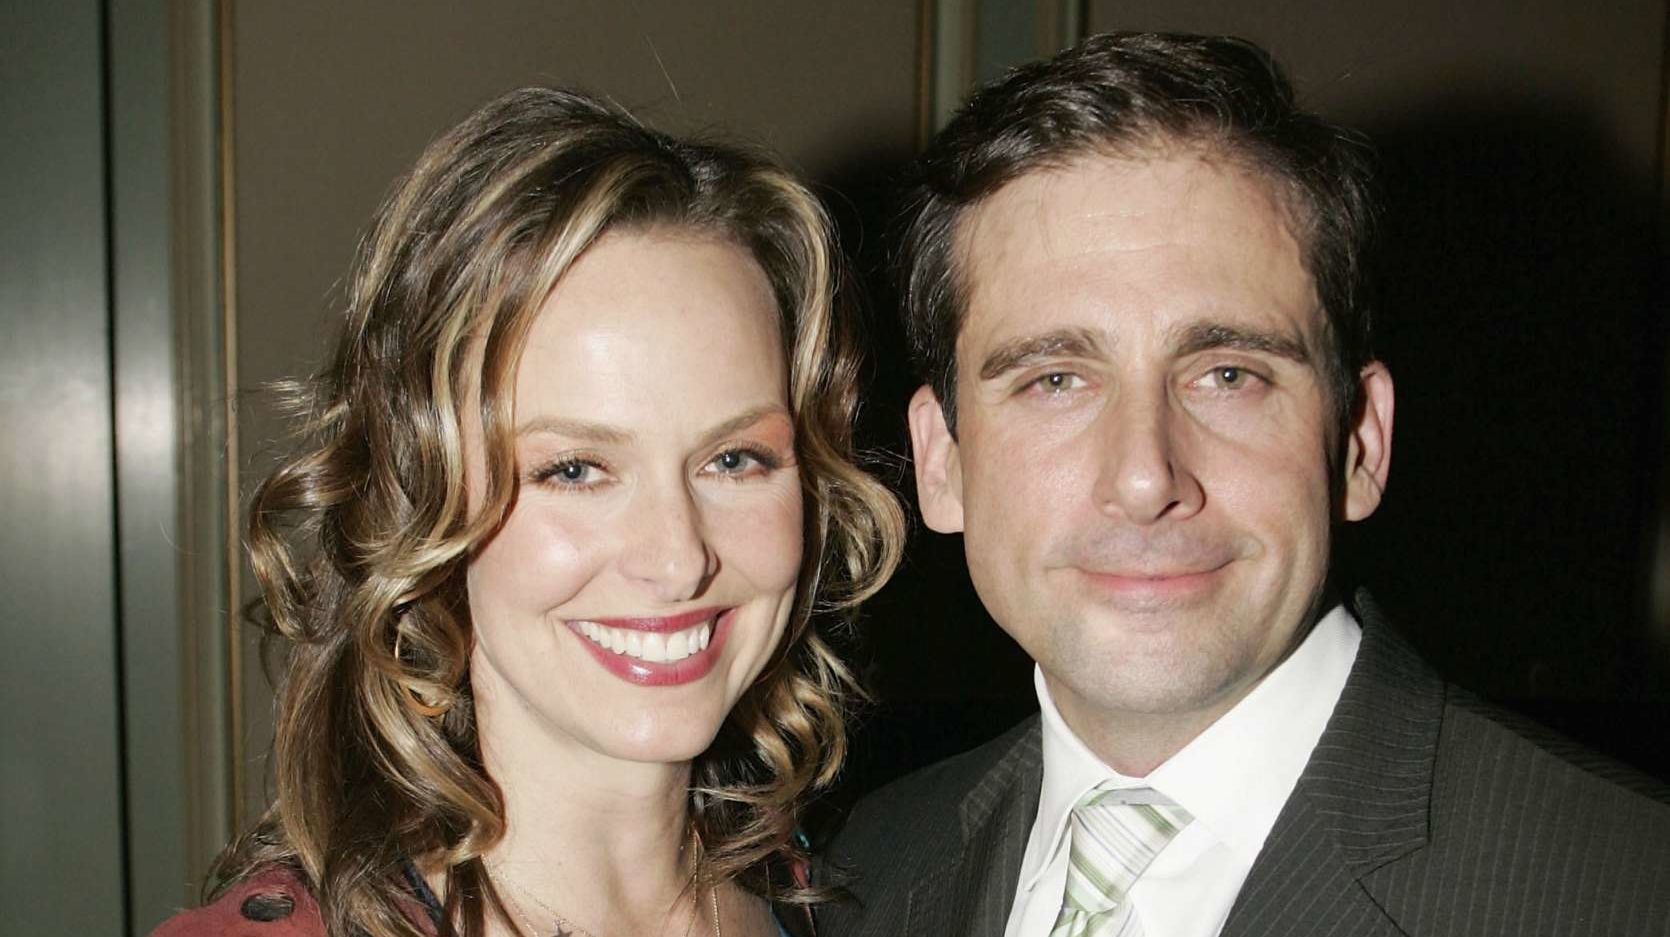 'The Office' Surprise: Jan's Baby's Father Has Been Revealed